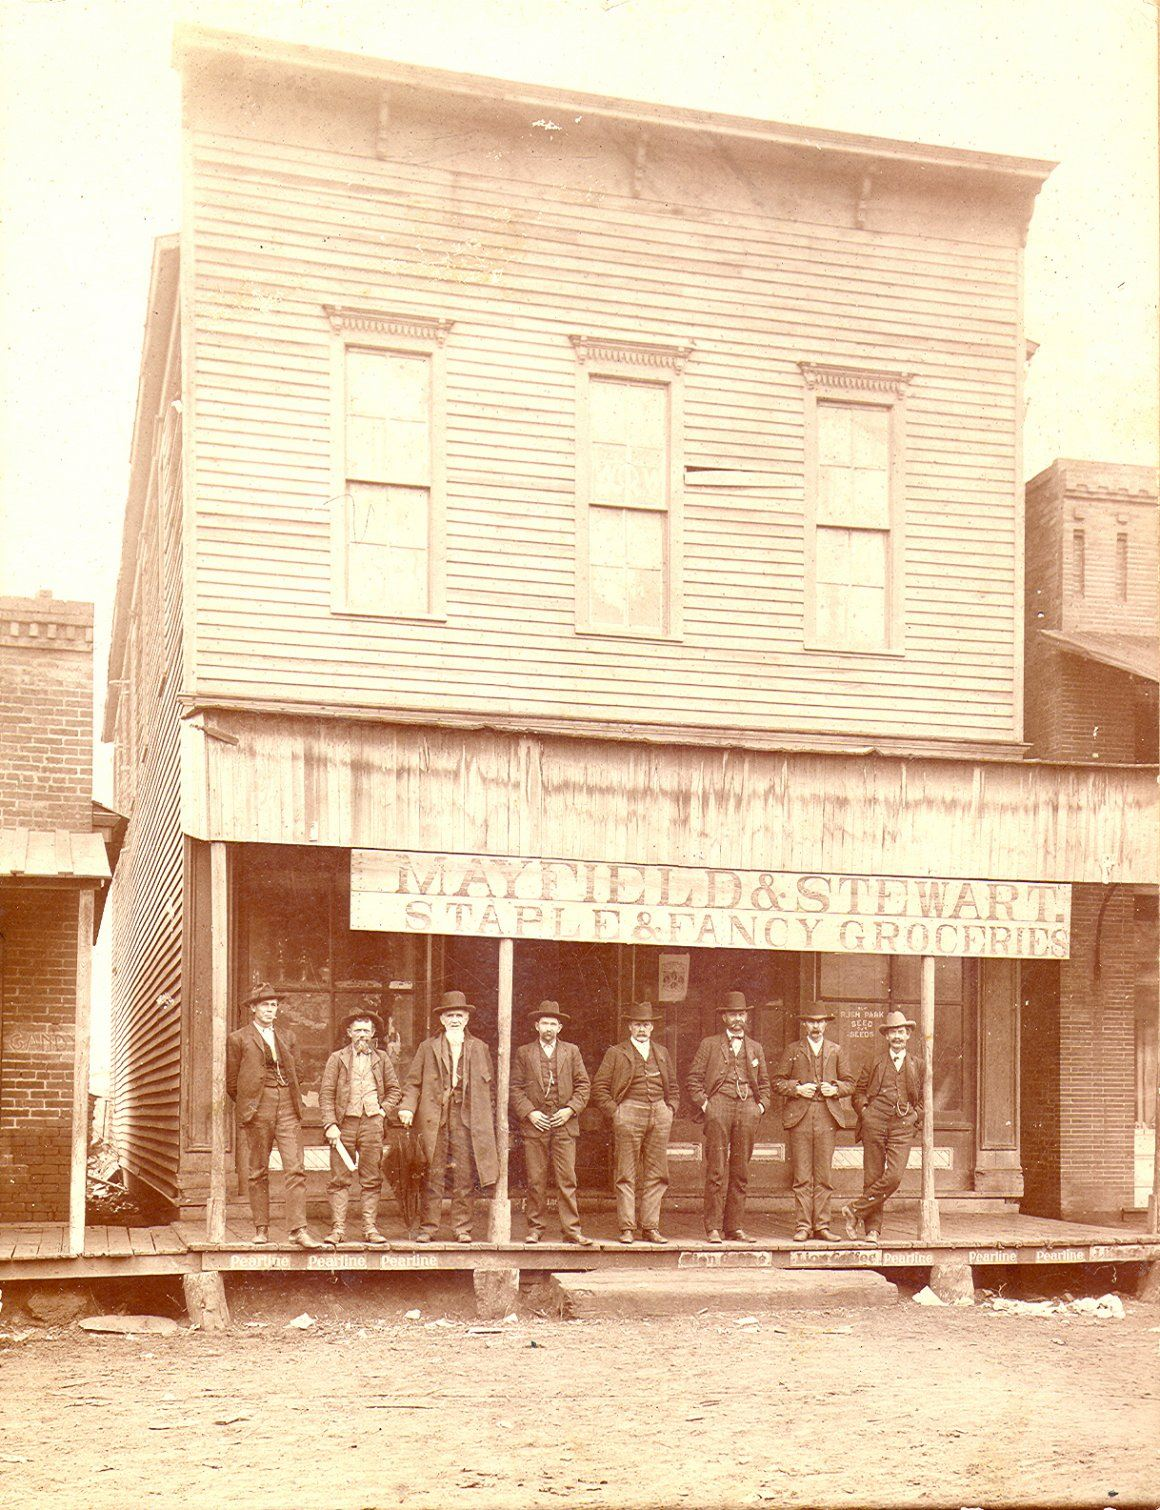 Mayfield and Stewart Grocery Store